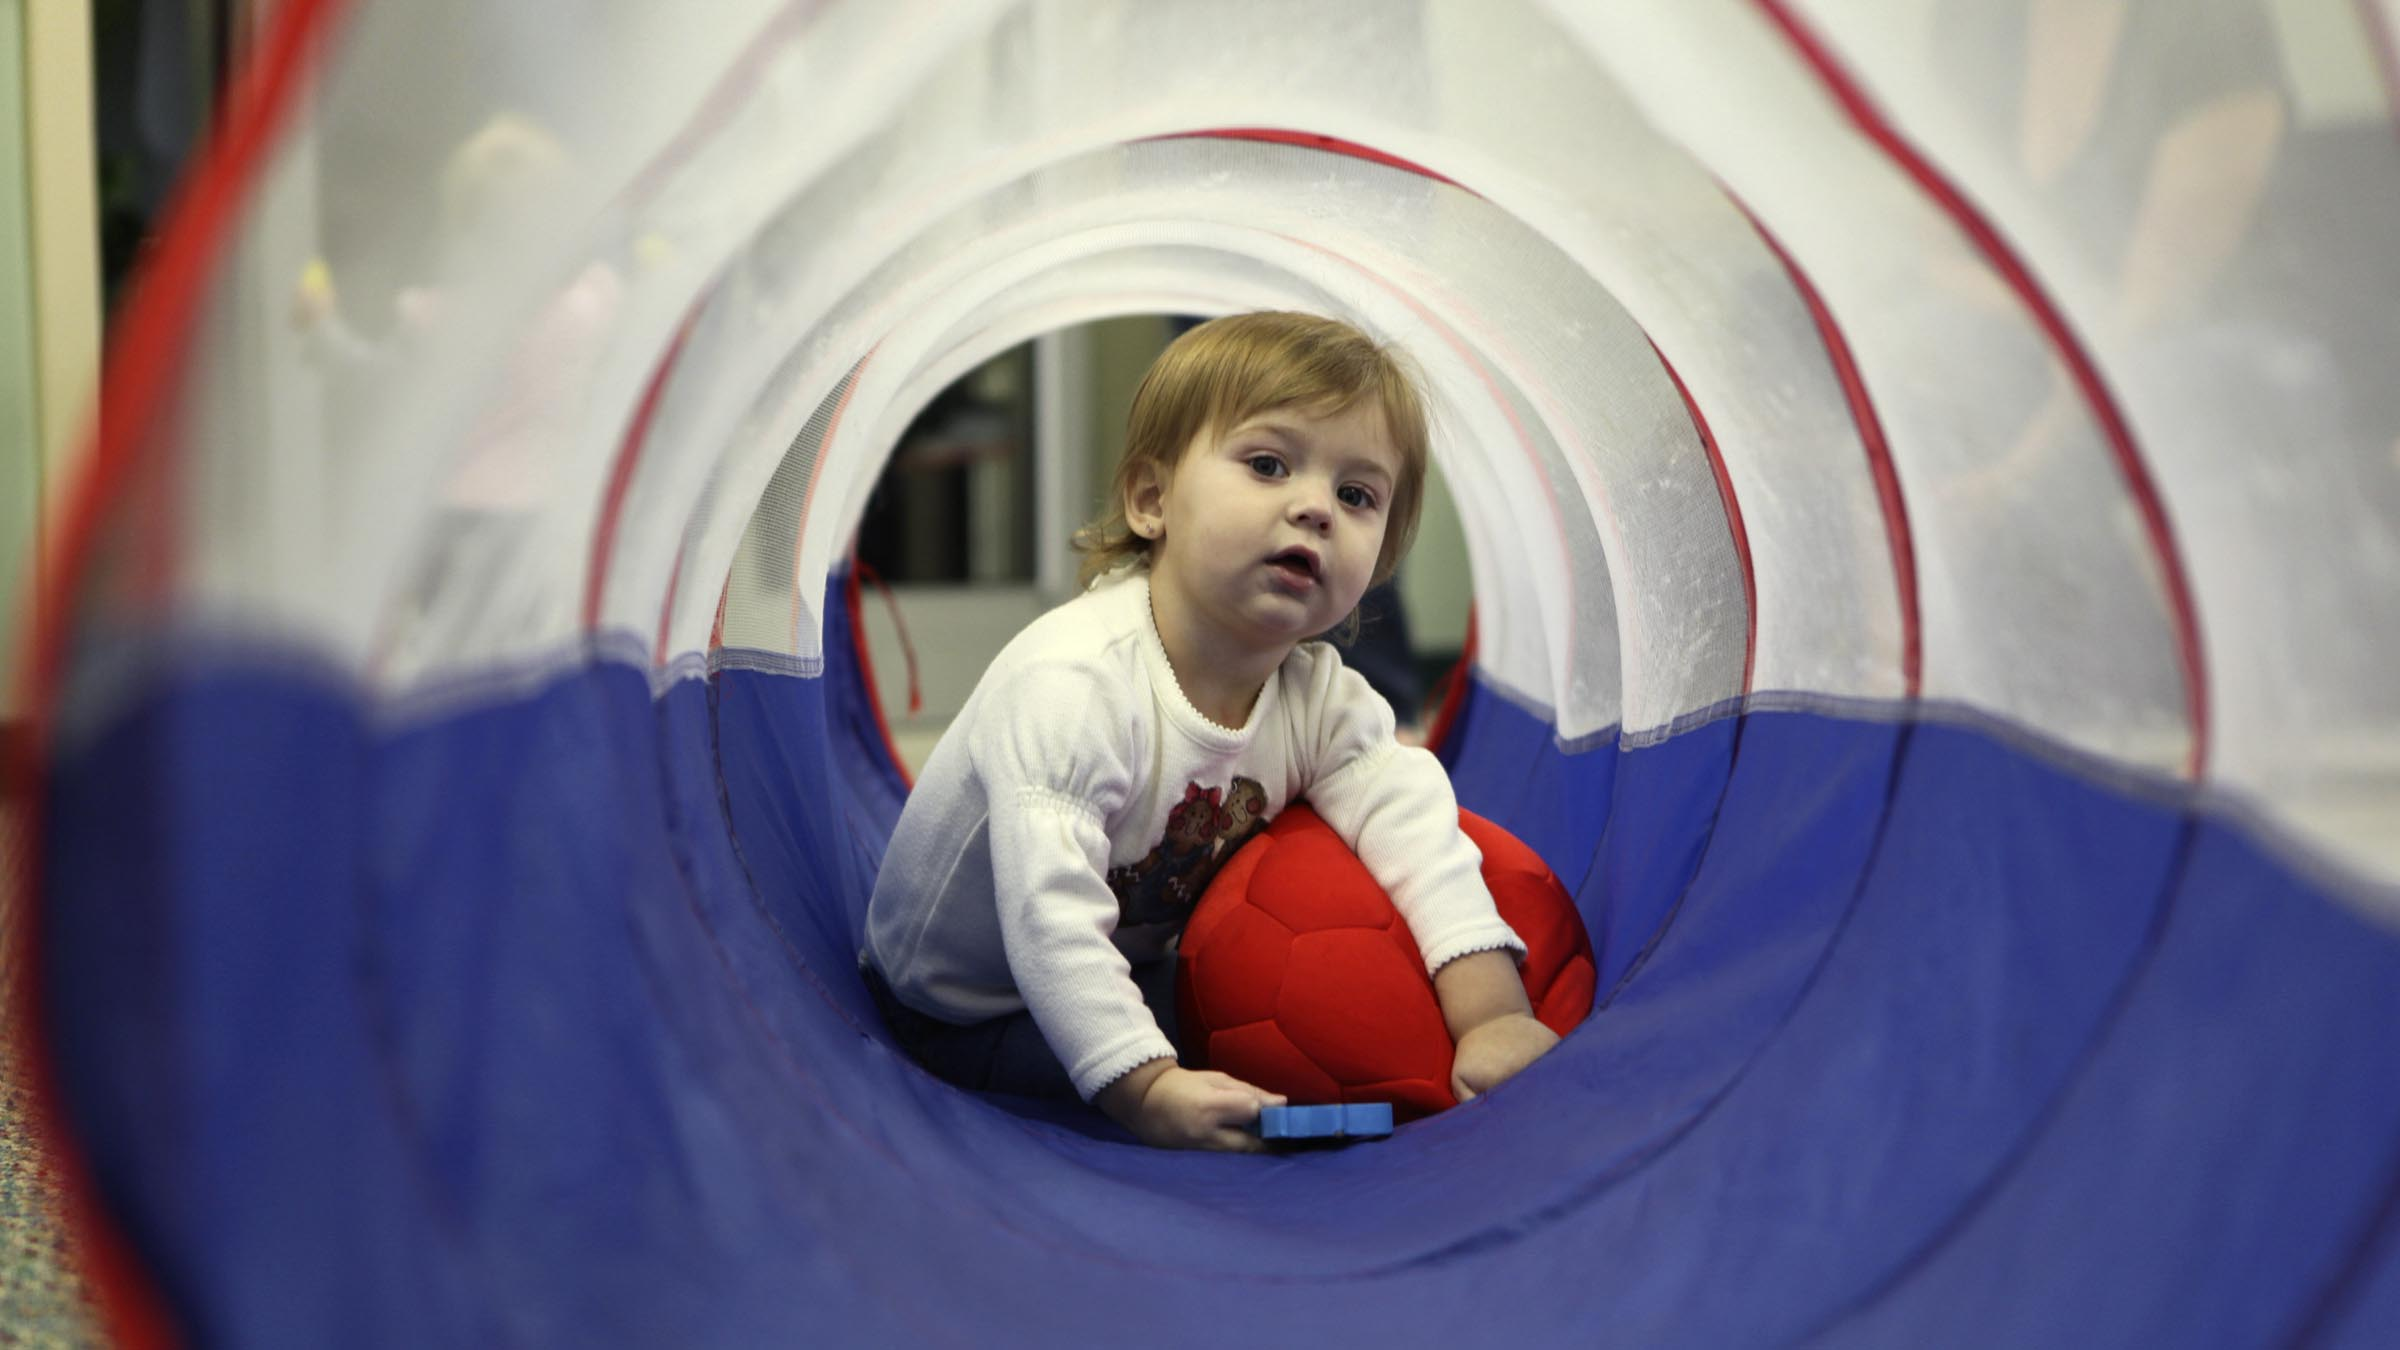 Kid in play area